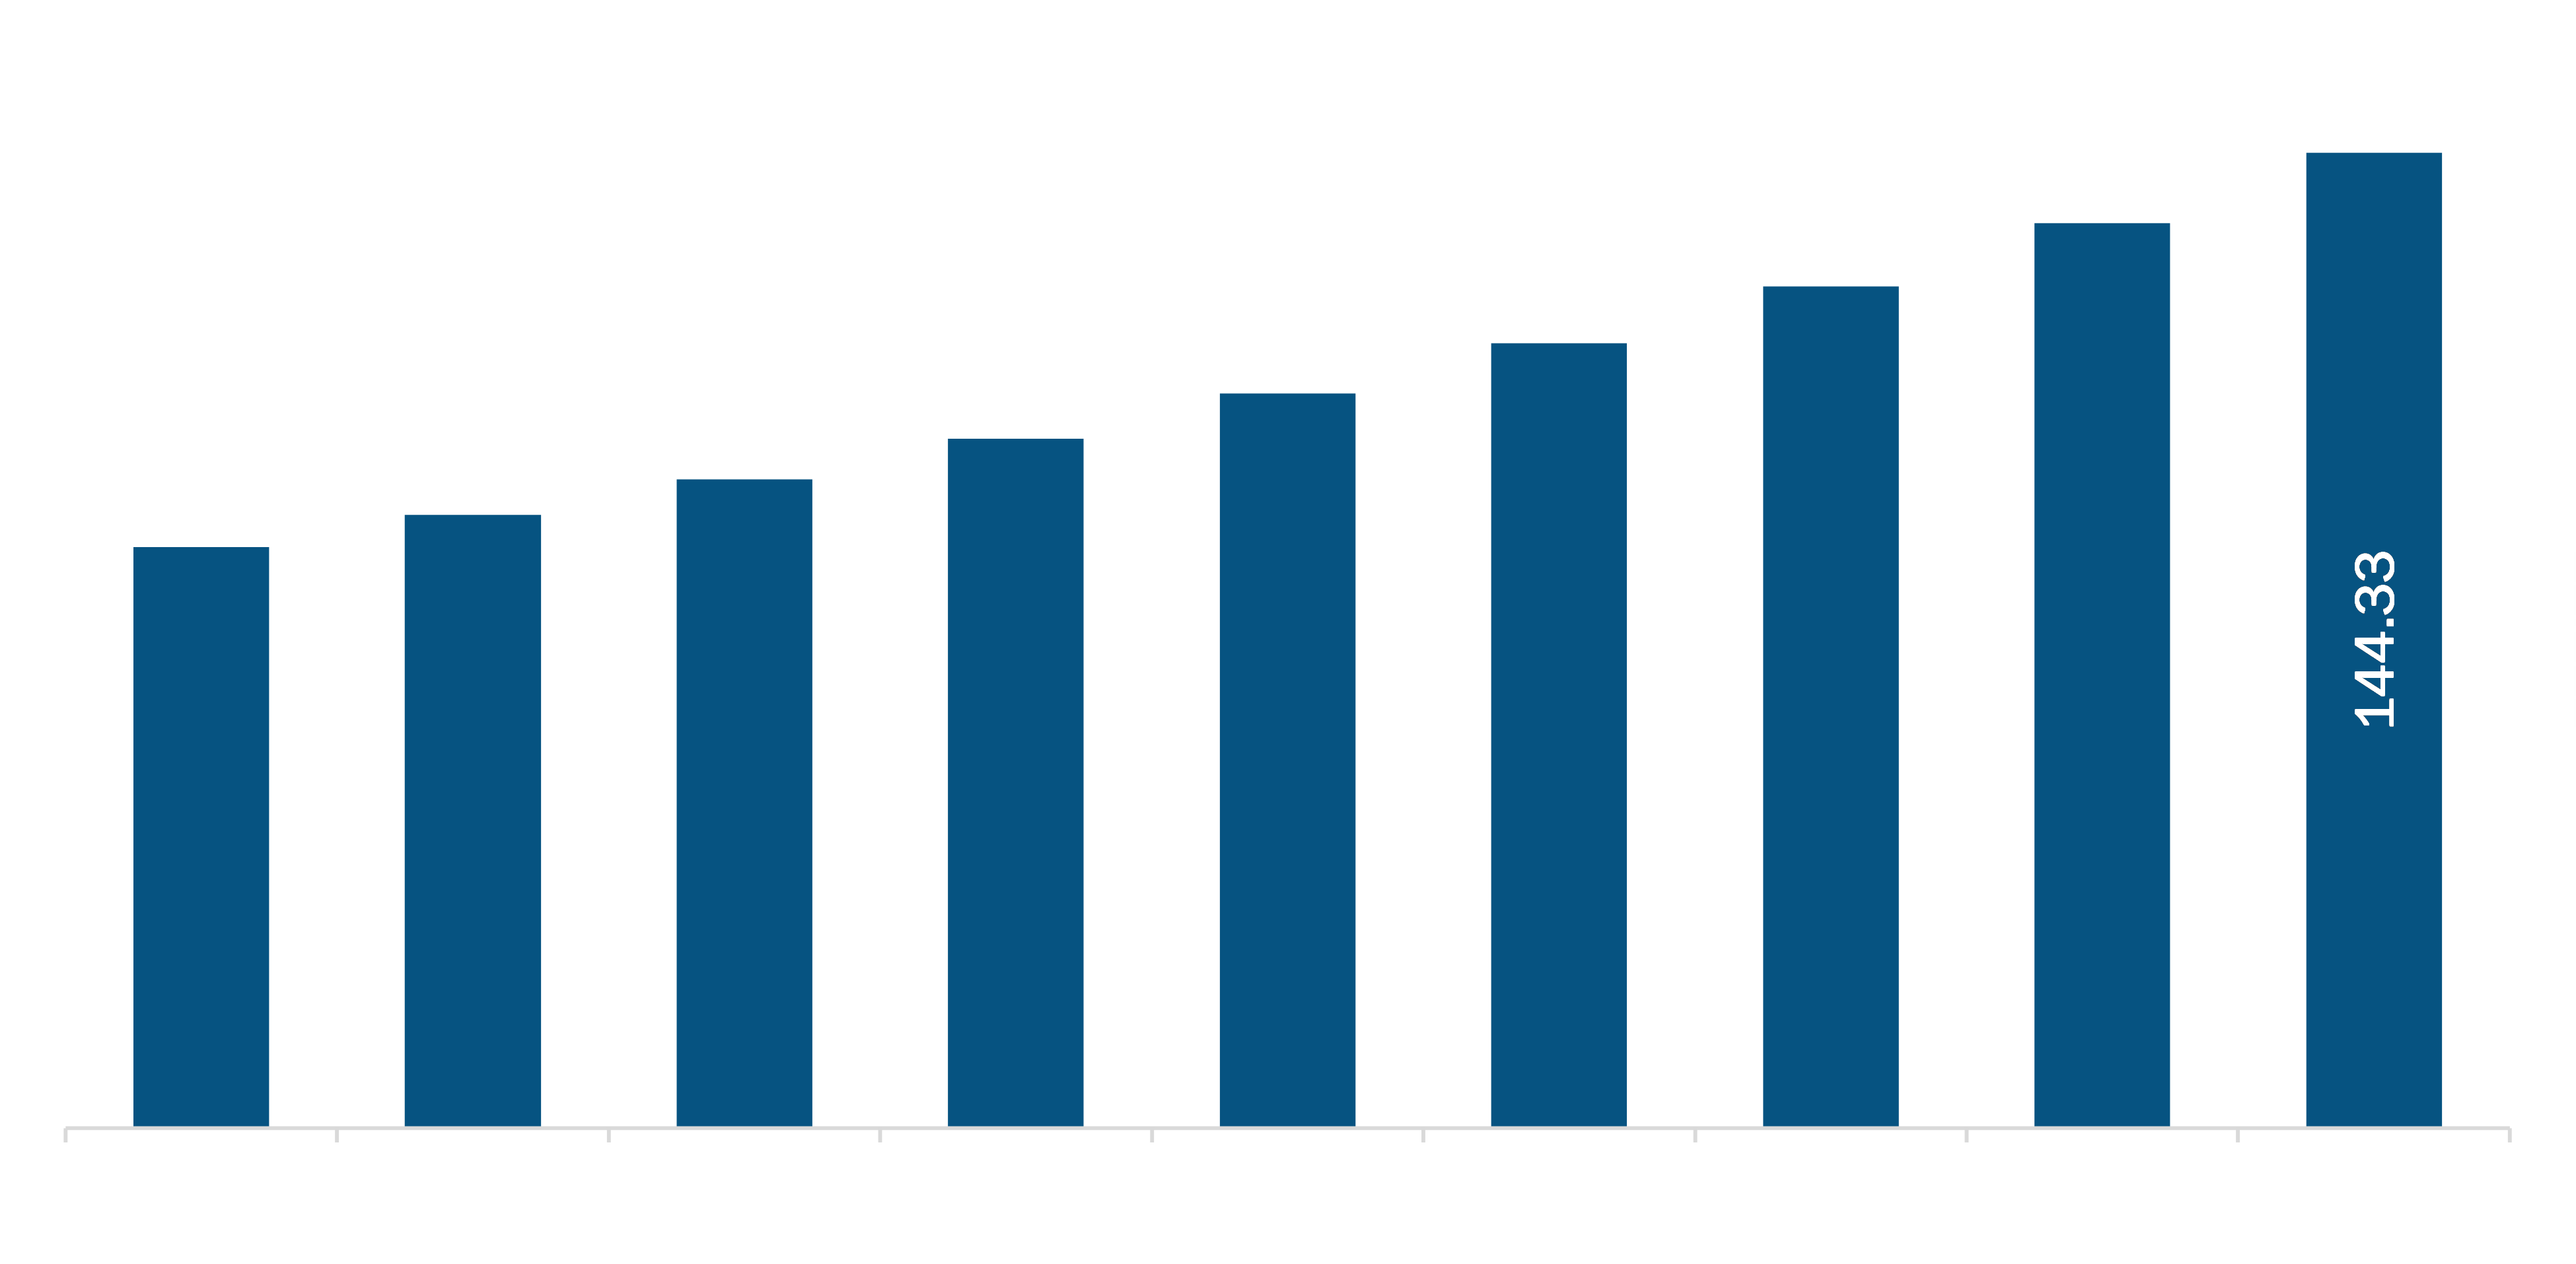 UK Eye Health Supplement Market, Revenue and Forecast to 2027 (US$ Mn)